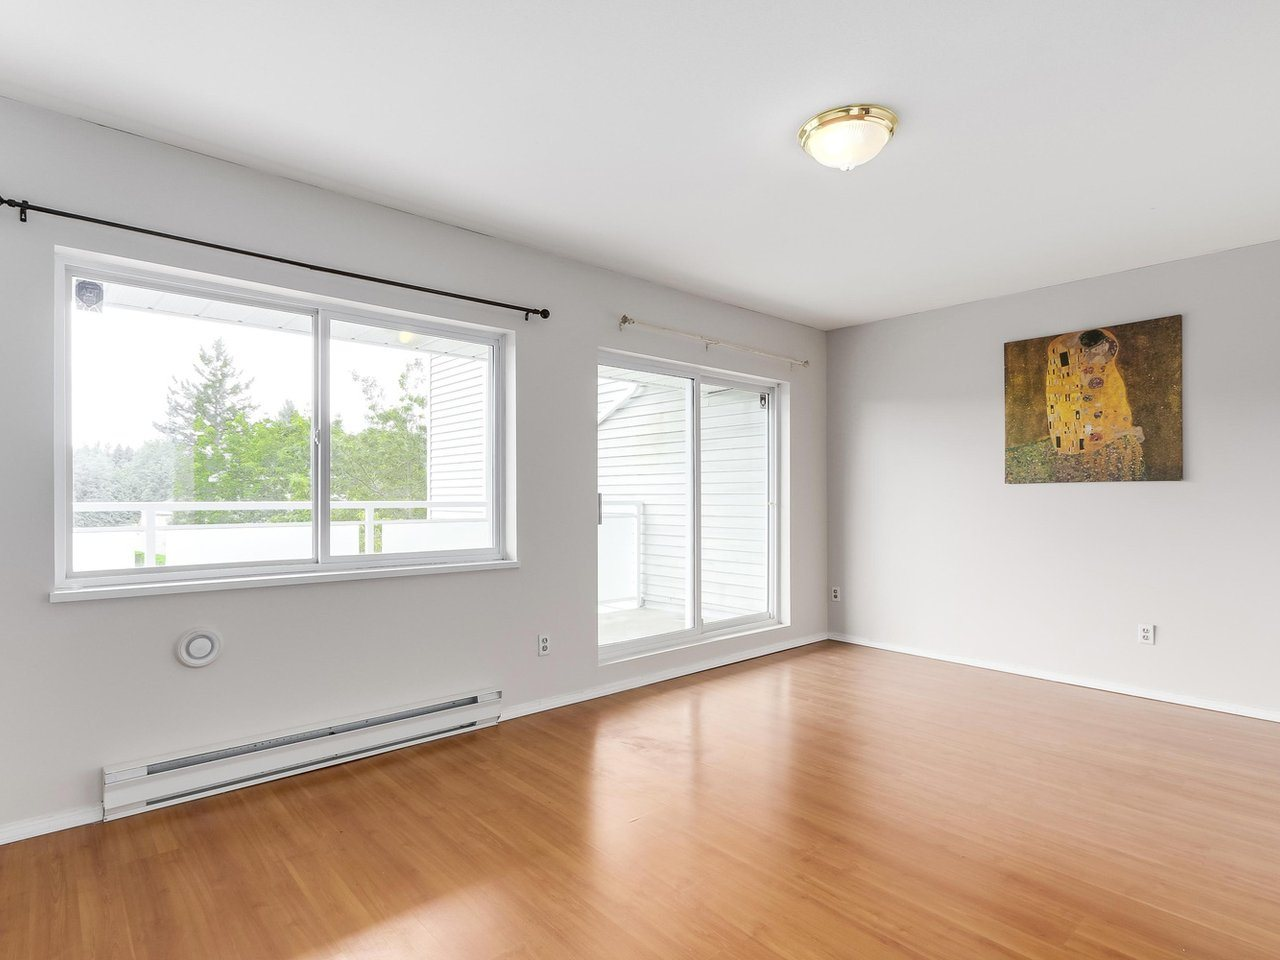 Condo Apartment at 308 13680 84 AVENUE, Unit 308, Surrey, British Columbia. Image 11